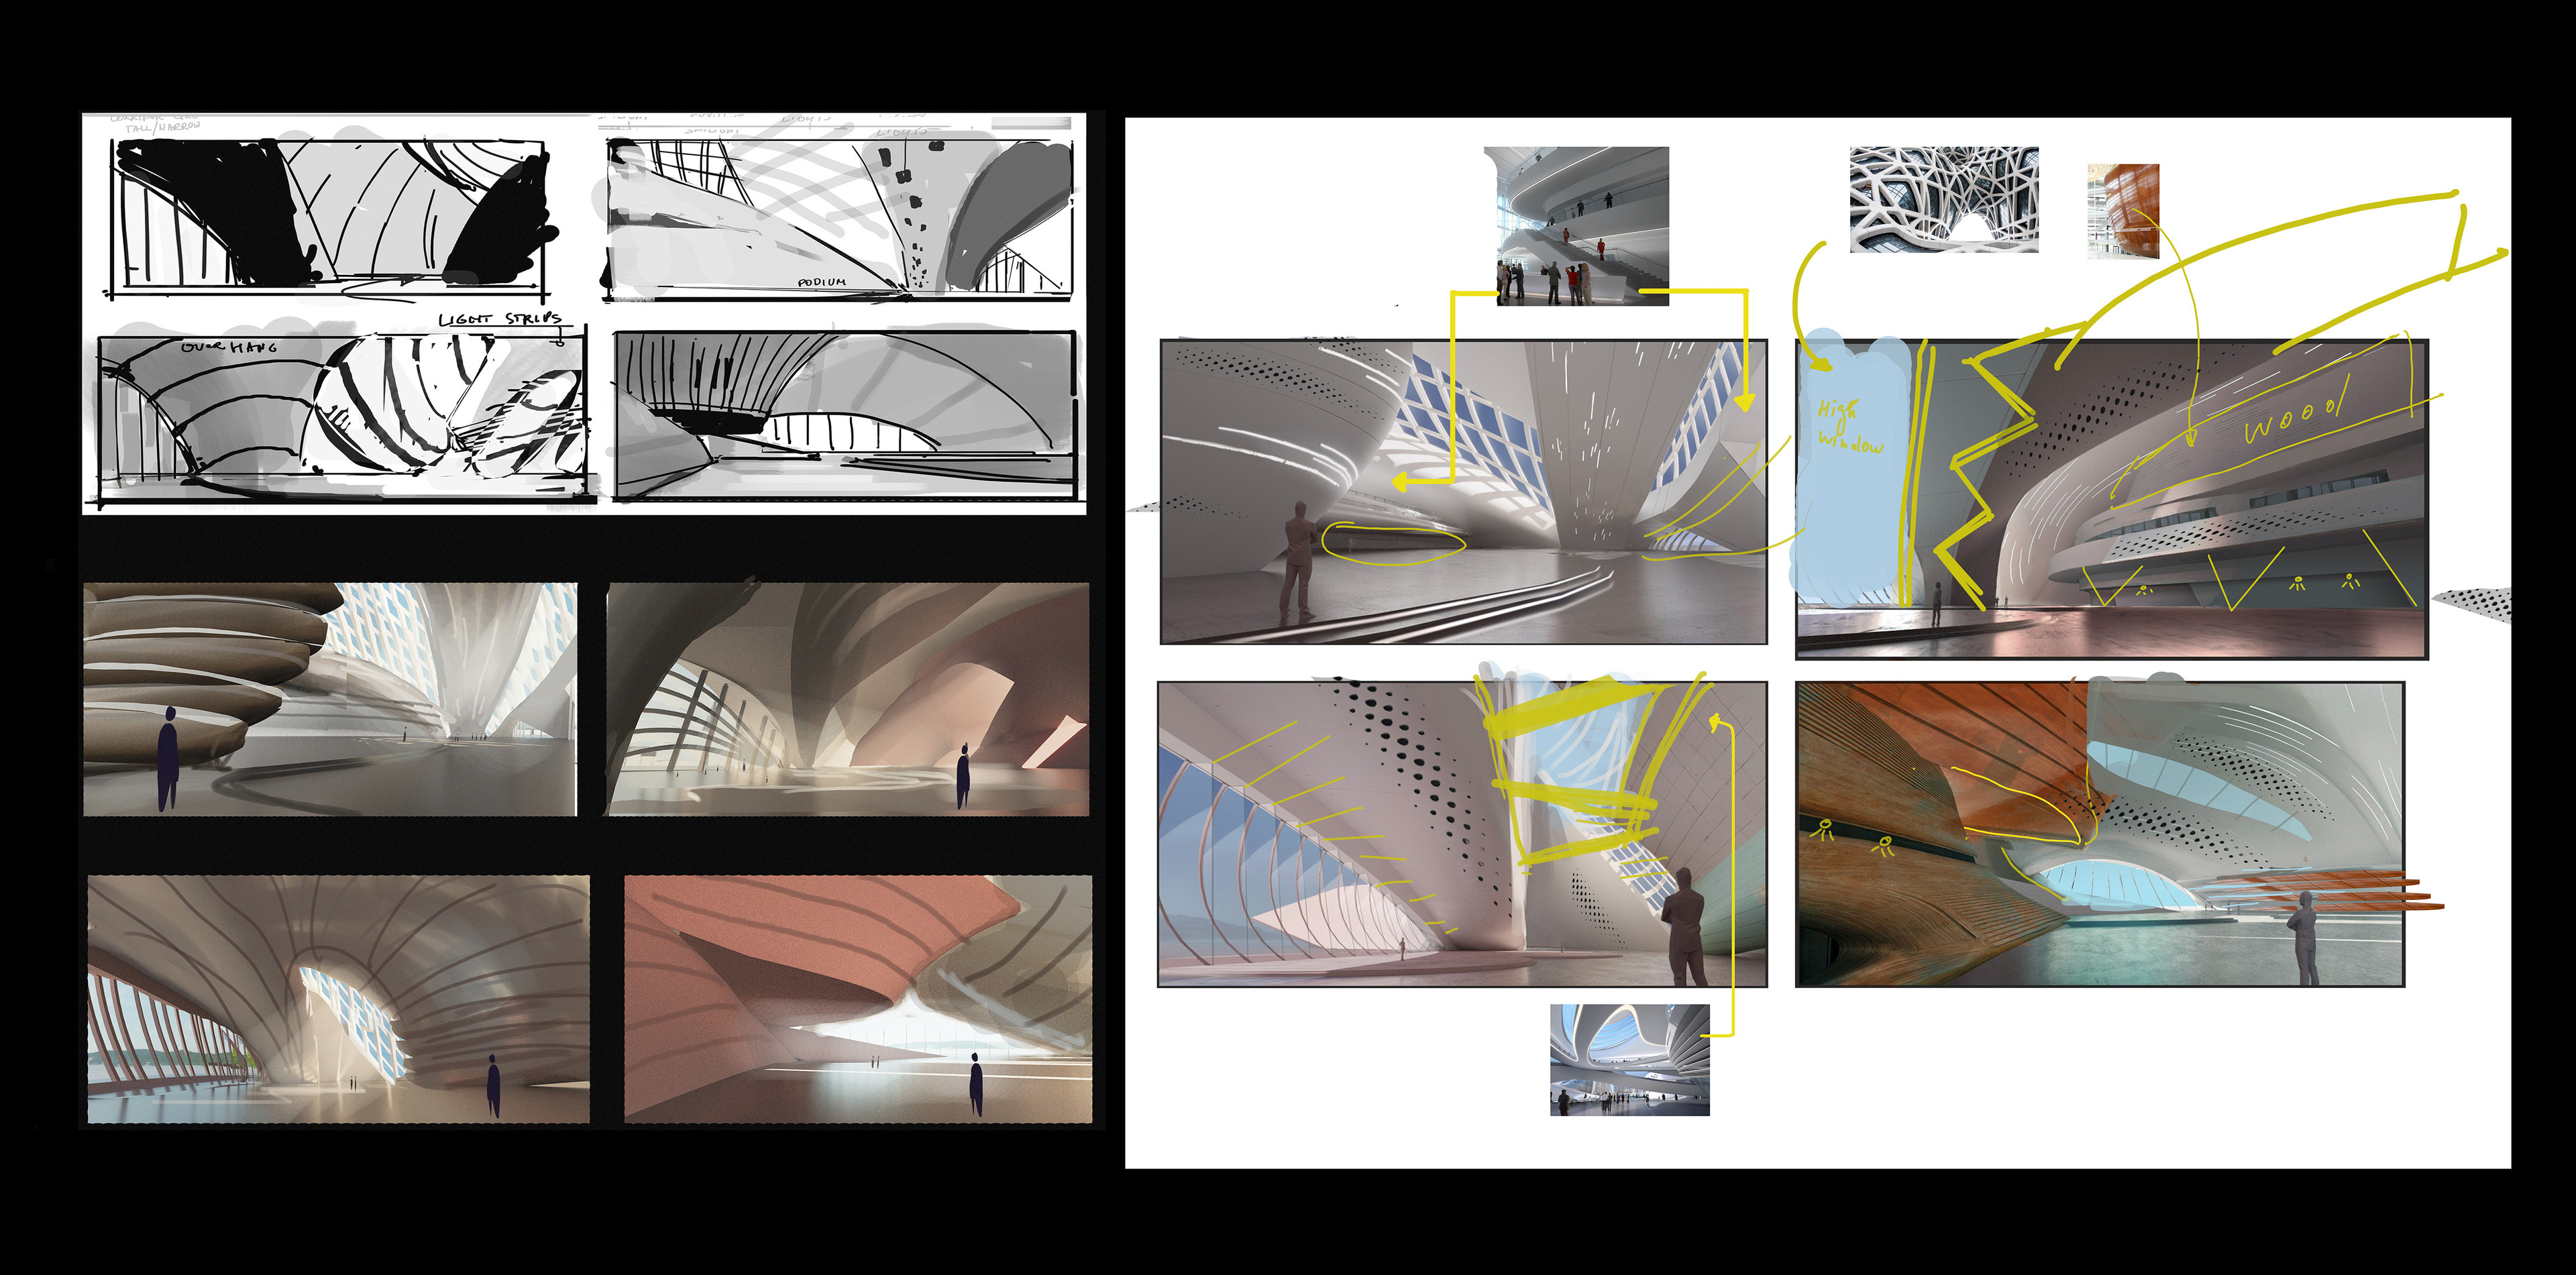 First sketches and draft as a idealization part of the spaces.